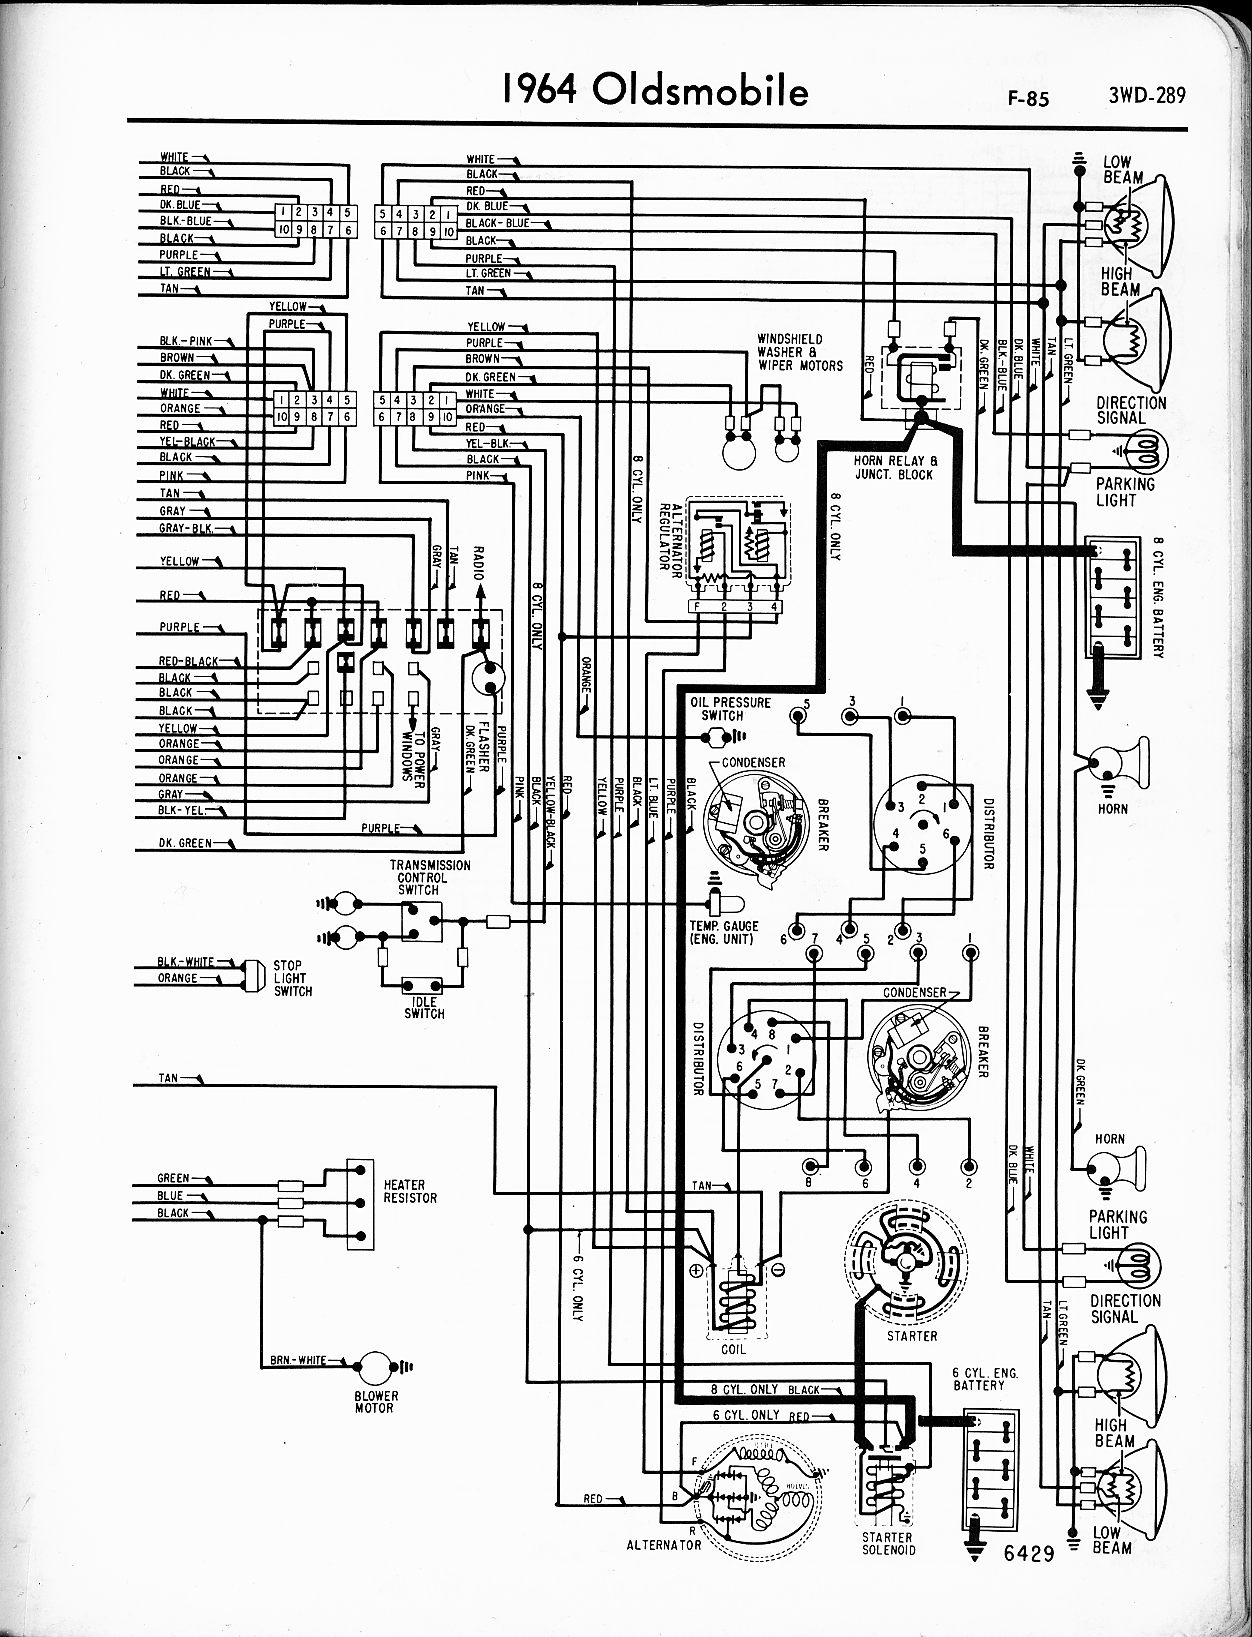 Oldsmobile wiring diagrams - The Old Car Manual Project